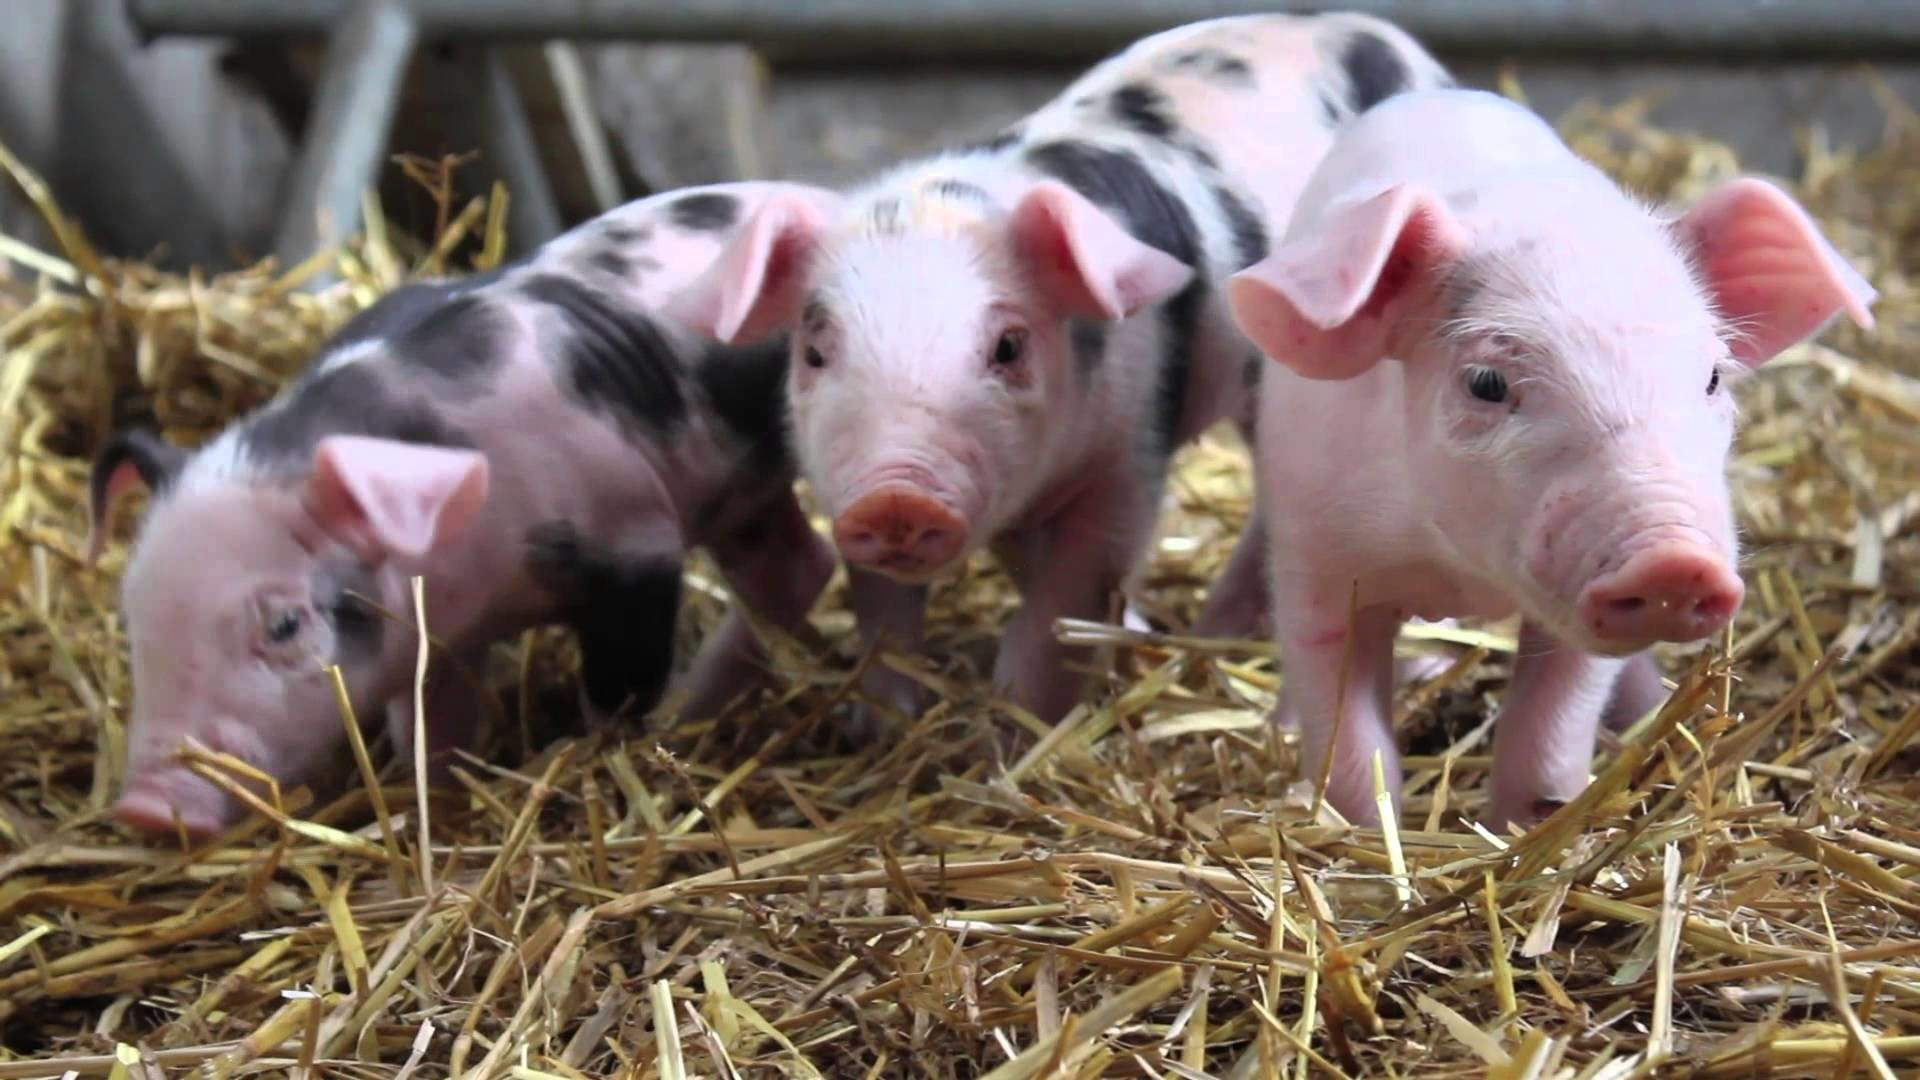 Res: 1920x1080, Cute Baby Pigs